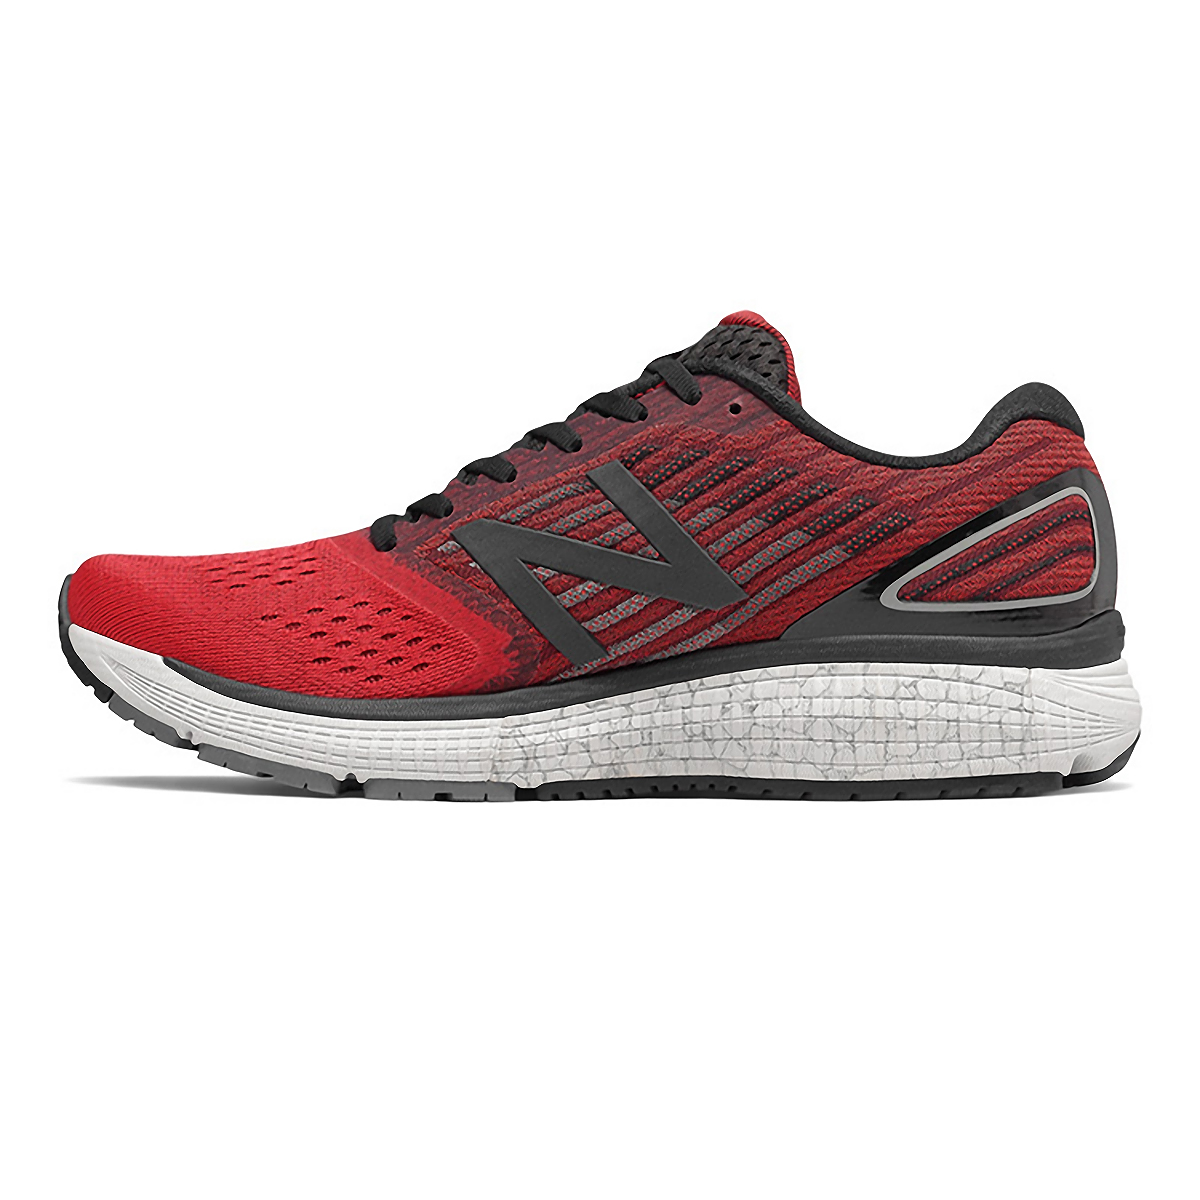 Men's New Balance 860V9 Running Shoe - Color: Team Red - Size: 7 - Width: Wide, Team Red, large, image 2